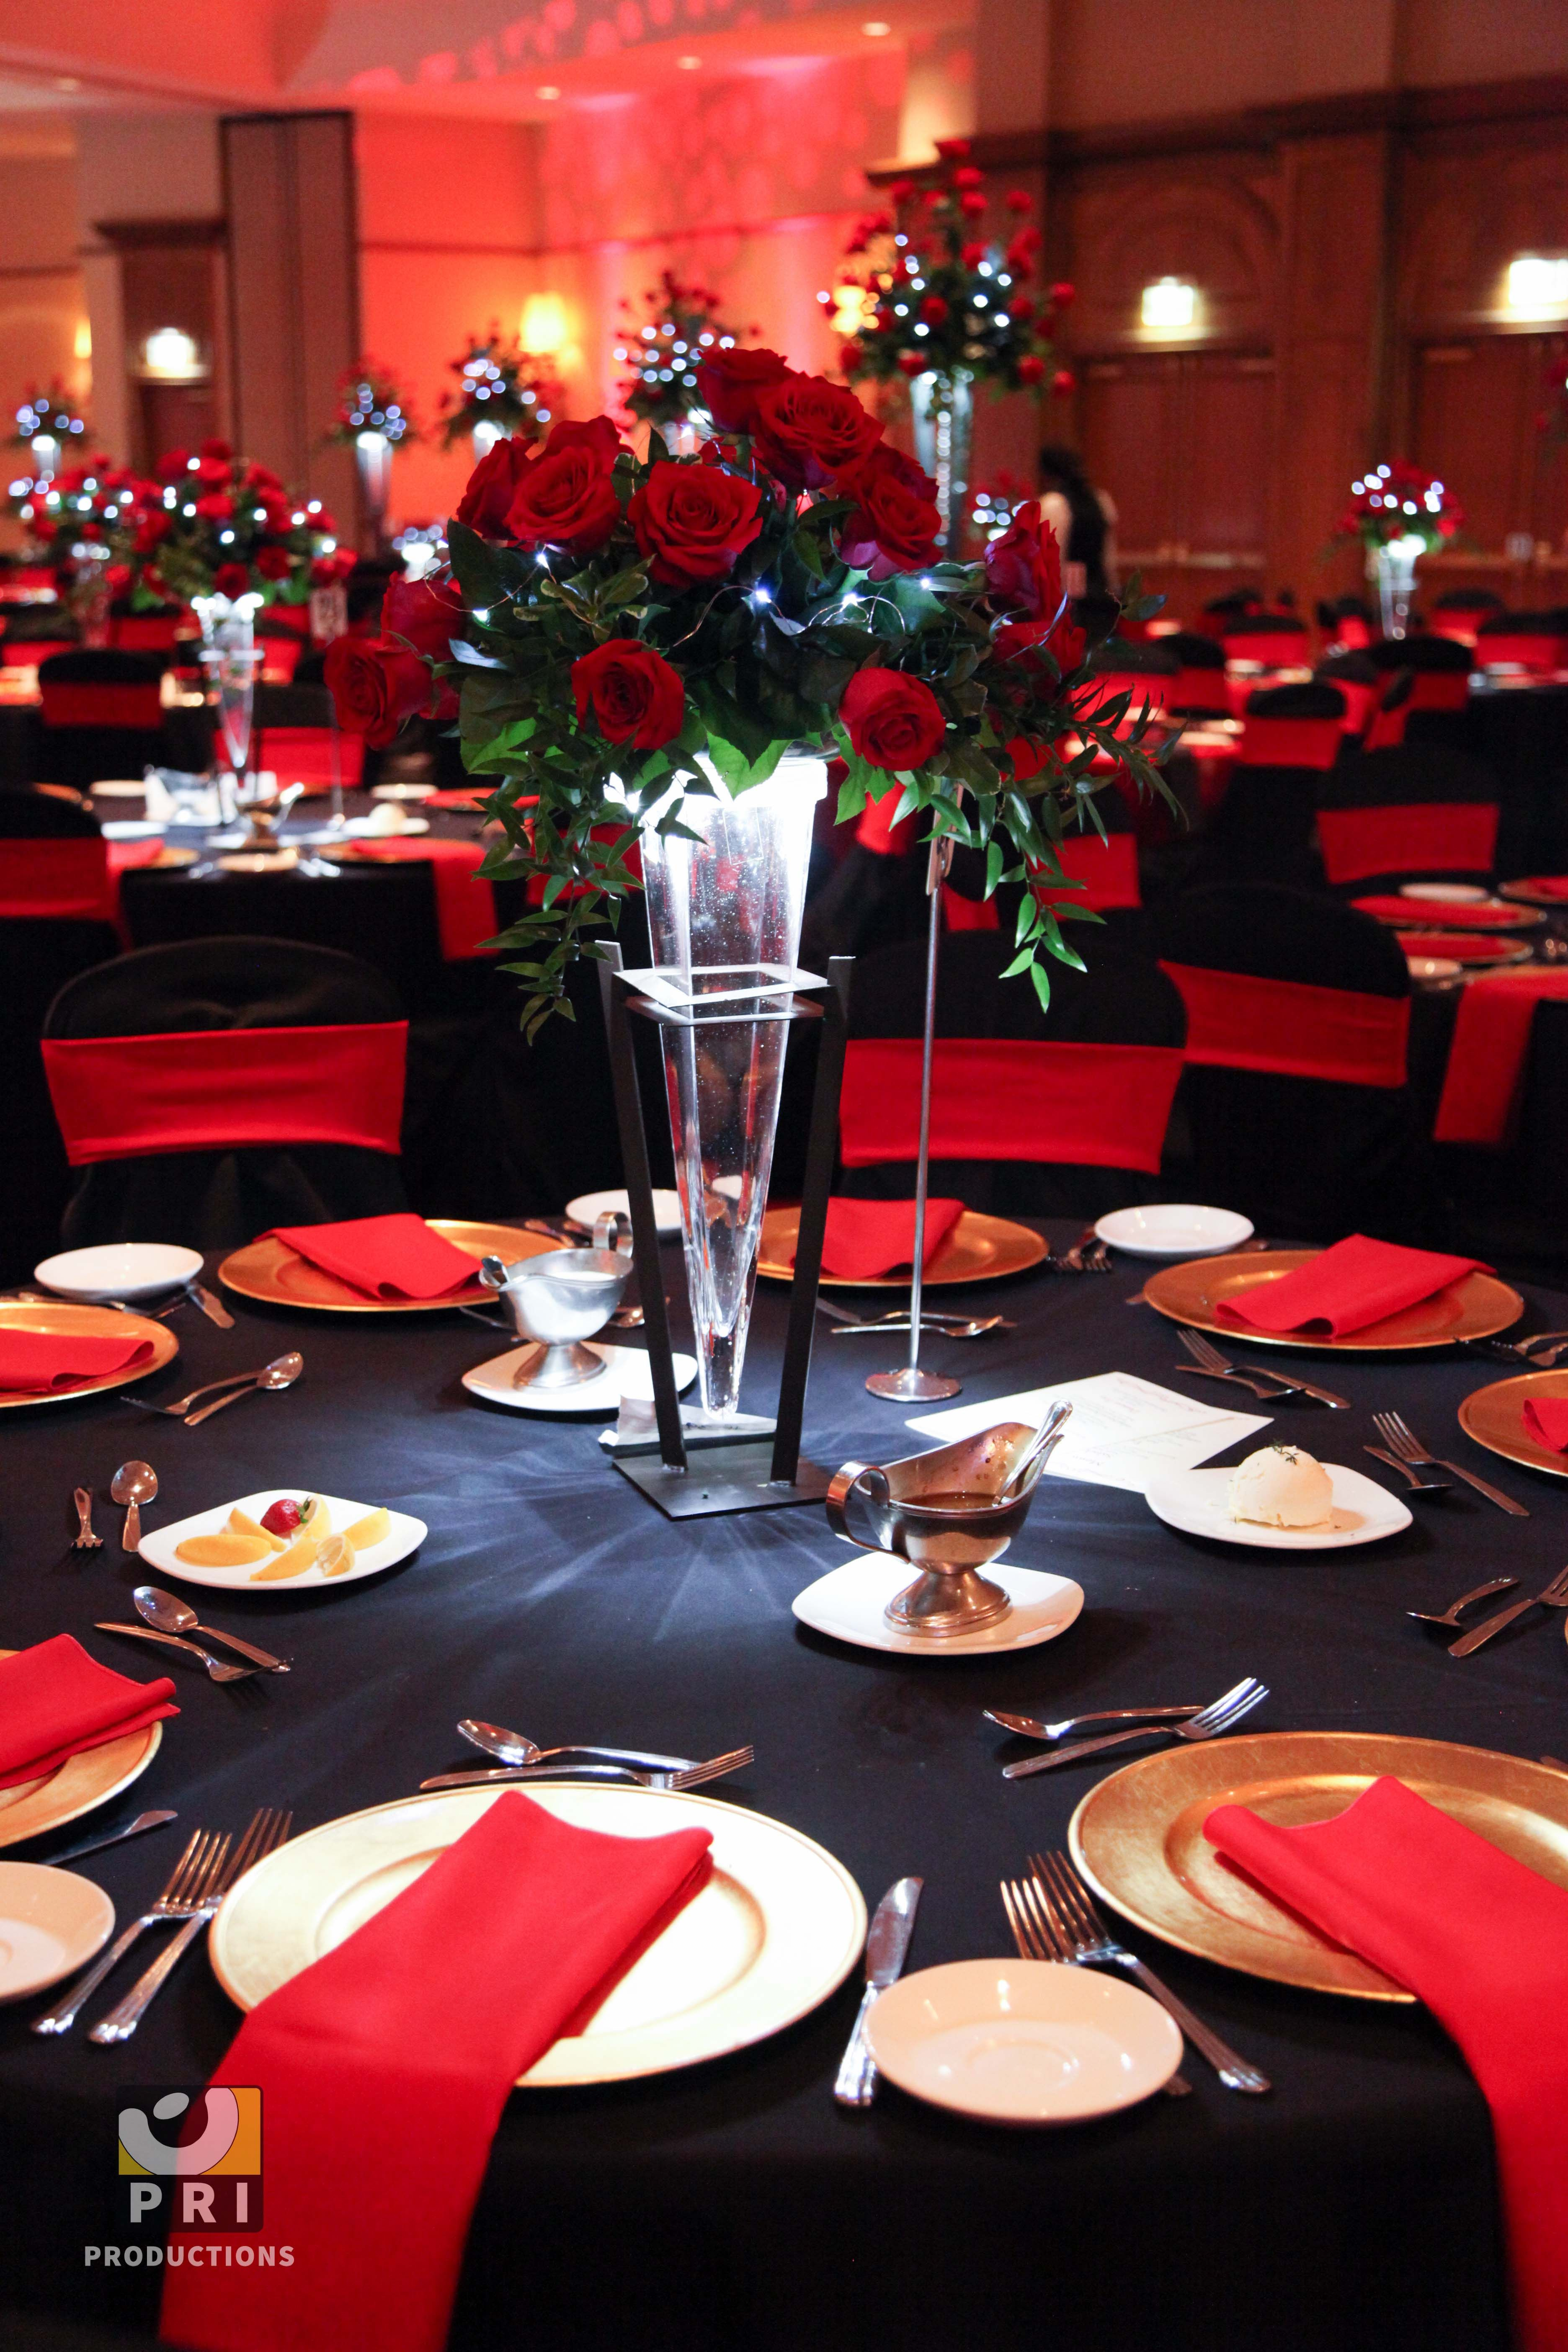 Black tie motown event with classic red rose centerpiece - African american party ideas ...